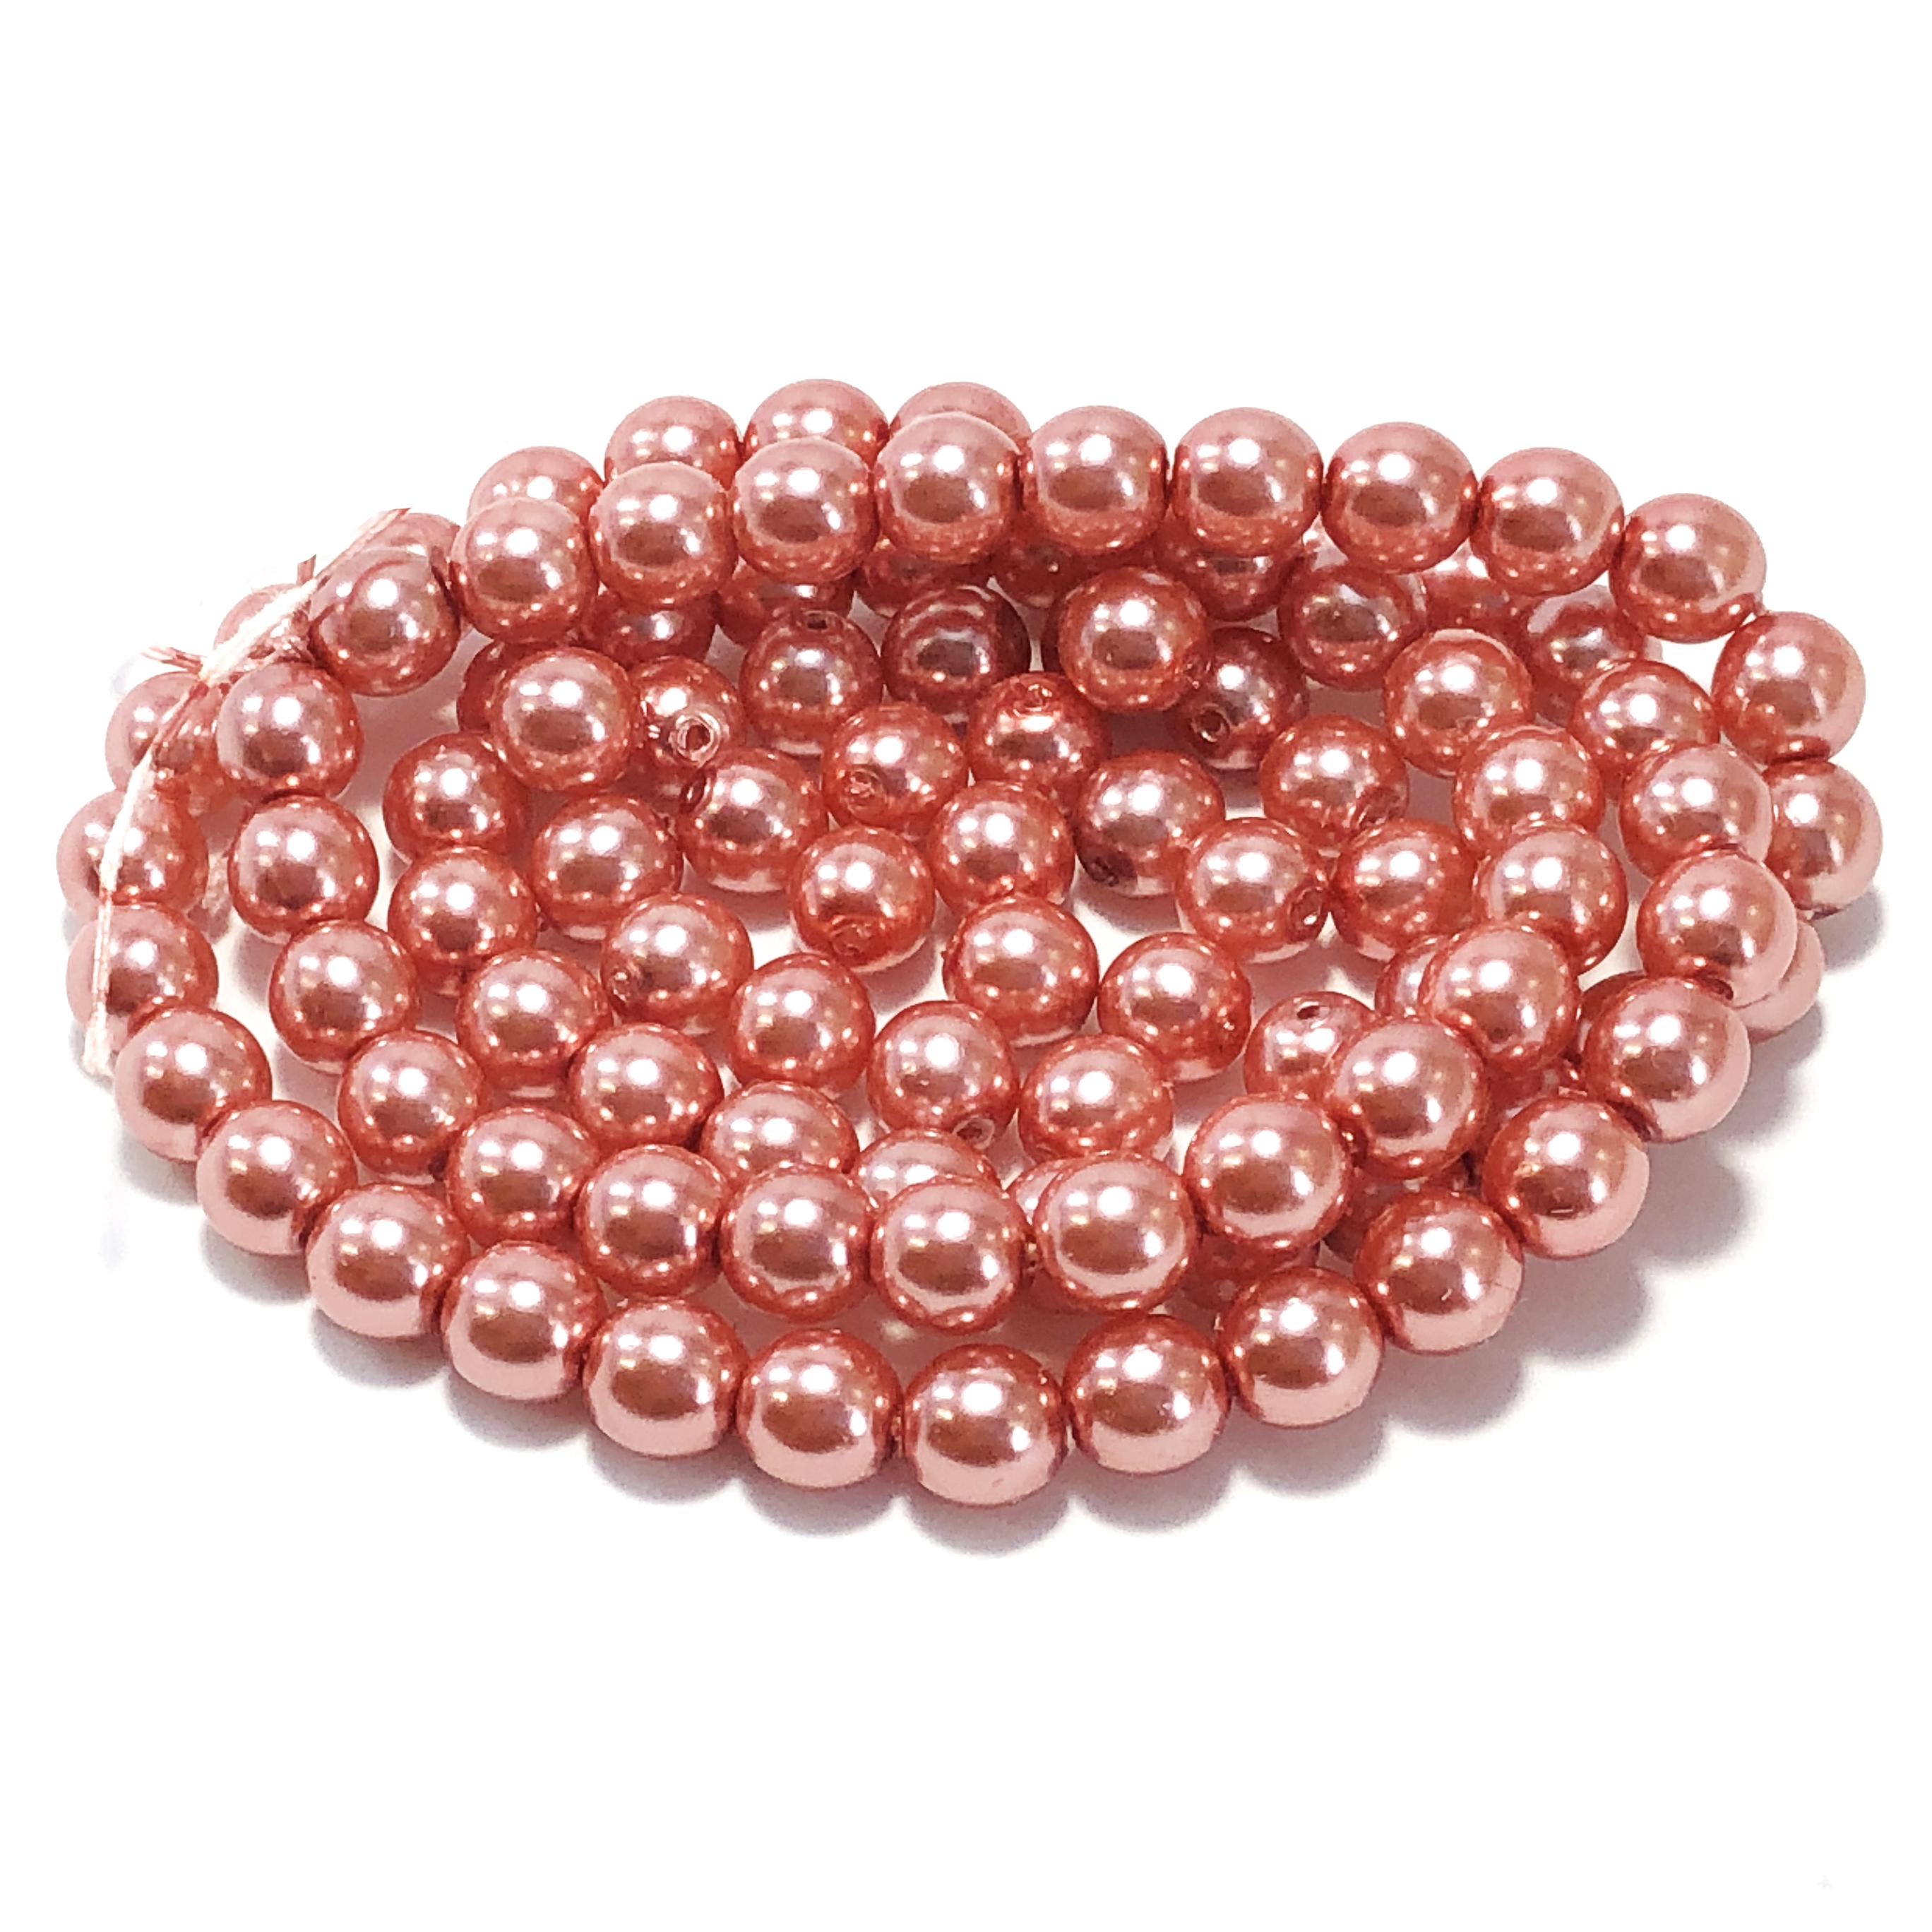 Salmon pearl beads, peachy pink pearl beads, 6mm bead, glass pearl, Czech, B'sue Boutiques, bead, jewelry making, beading supplies, vintage supplies, pearl, pearl beads, glass beads, peach beads, 09507